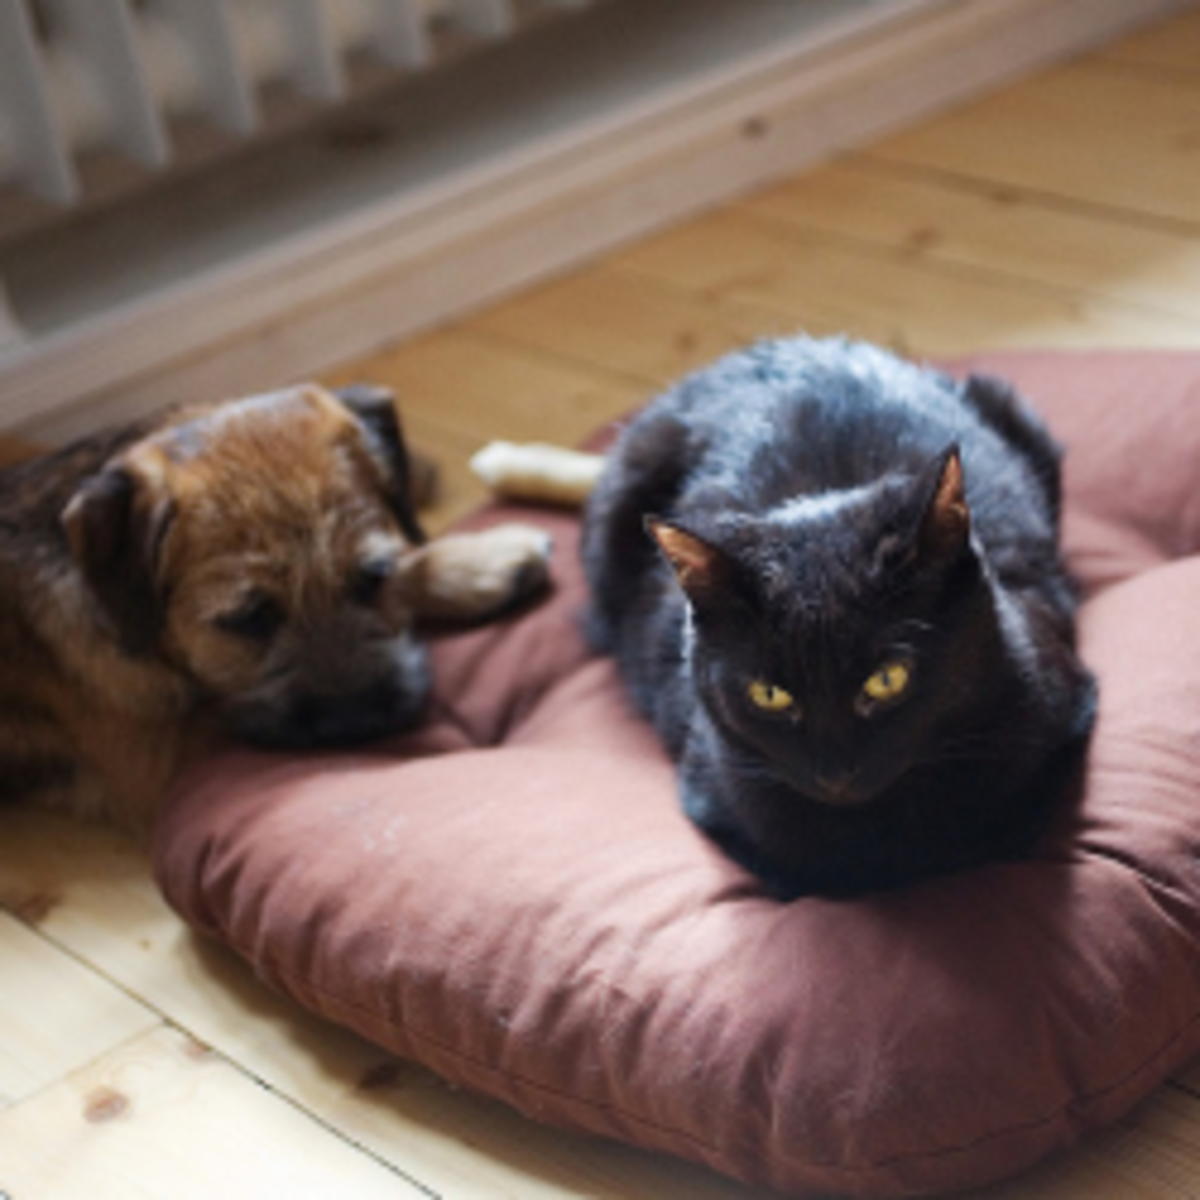 ★ DIY Dog Beds & Cat Toys | Homemade Pet Gifts and Fun Products ★